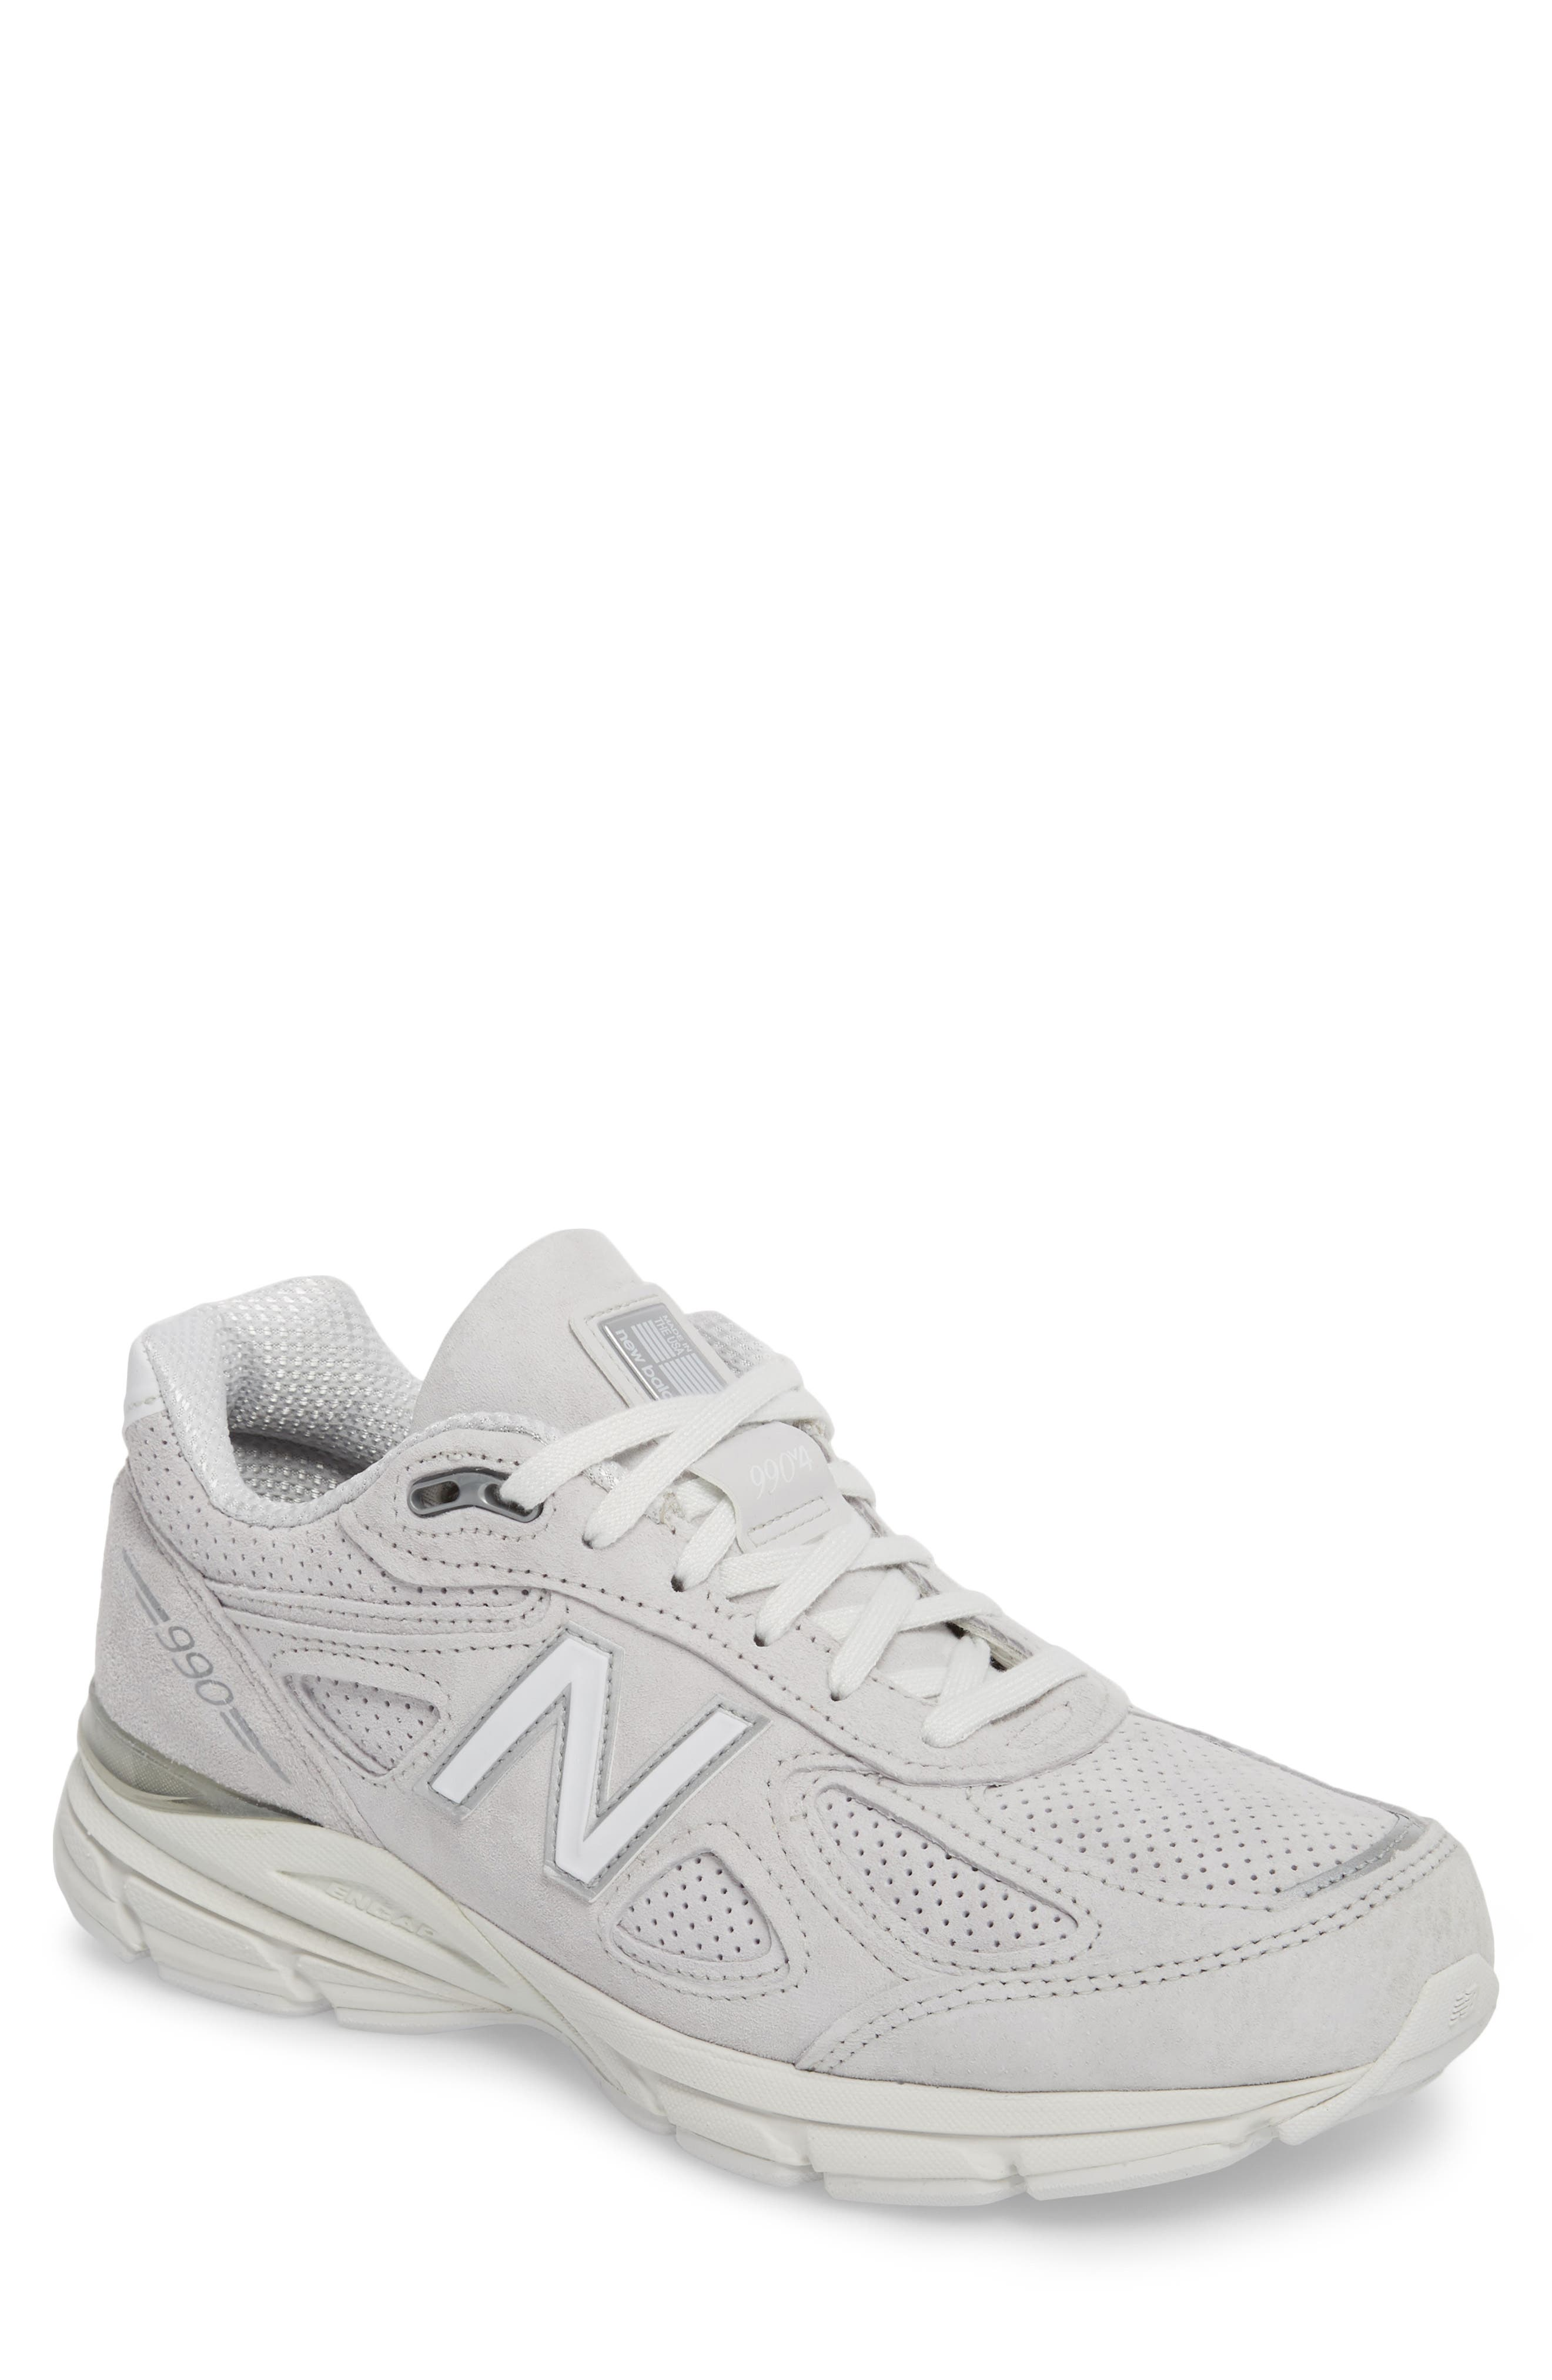 990v4 Perforated Sneaker,                         Main,                         color, 034